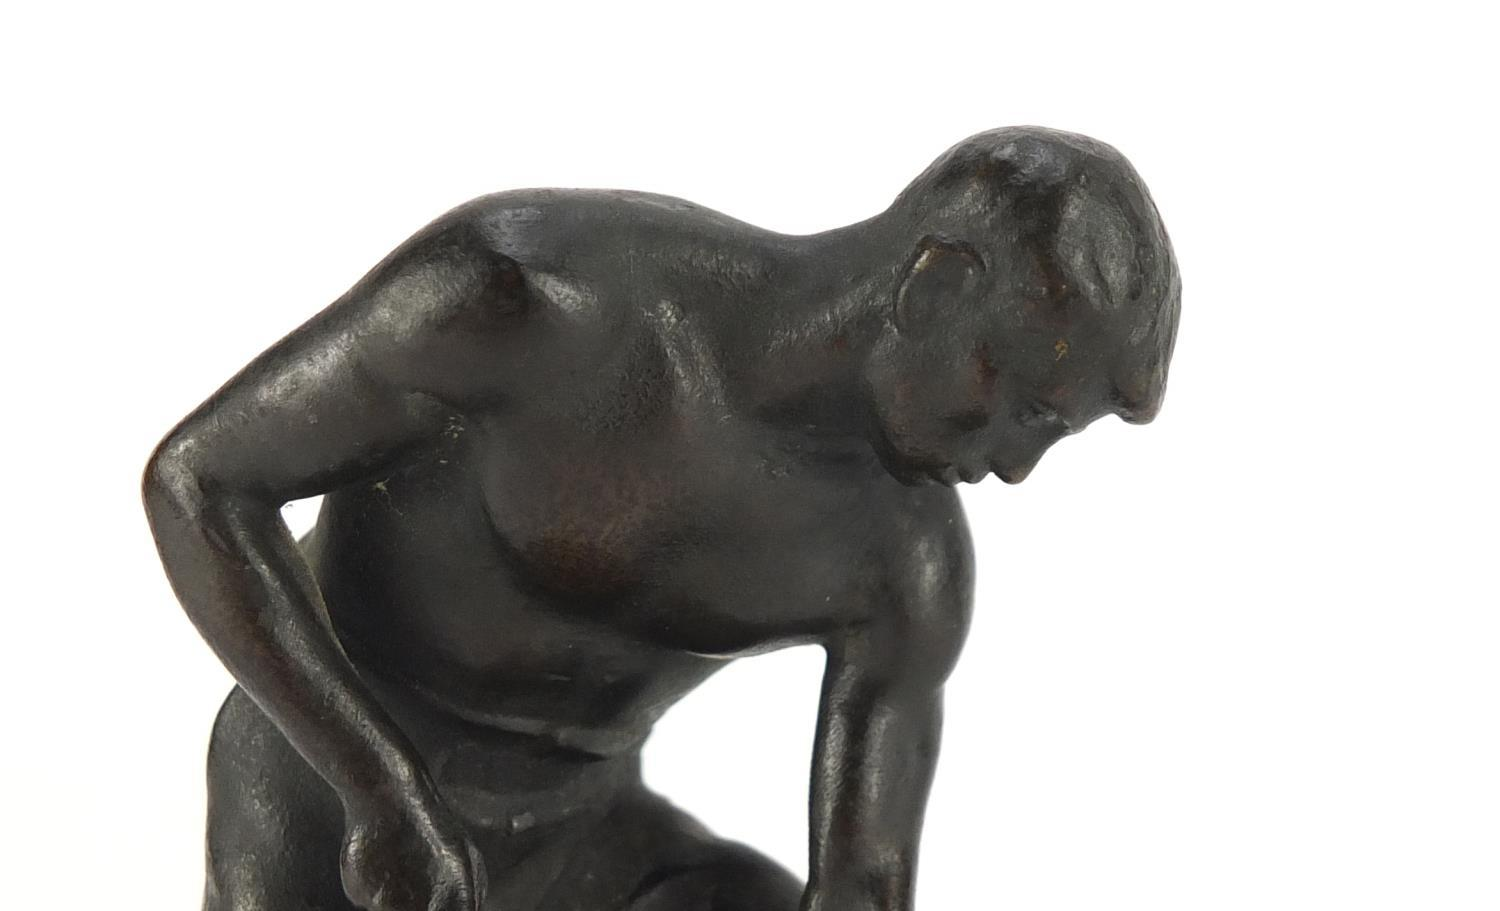 Lot 9 - Johann Robert Korn, patinated bronze of a young man with a pick axe, raised on a naturalistic